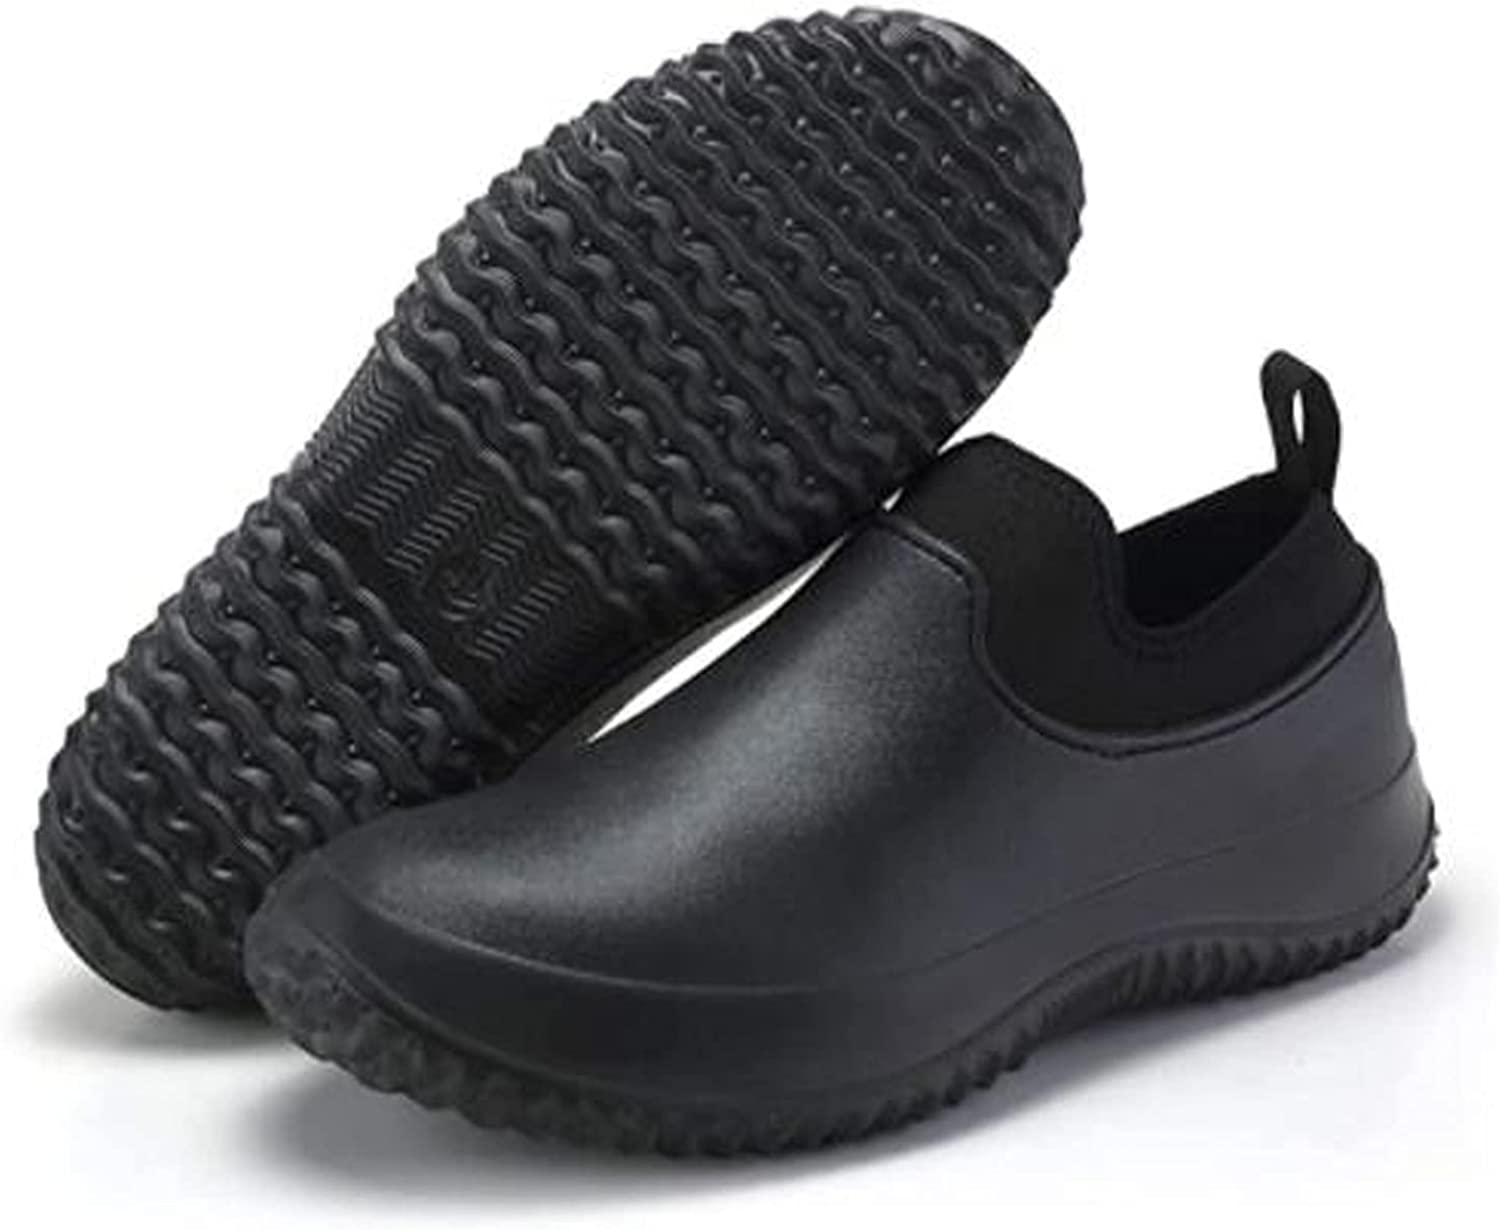 ghitstp Chef Shoes Waterproof Non Slip Water Shoes Safety Garden Shoes Kitchen Shoes Rain Boots Catering Sneakers Work Clogs for Men Women